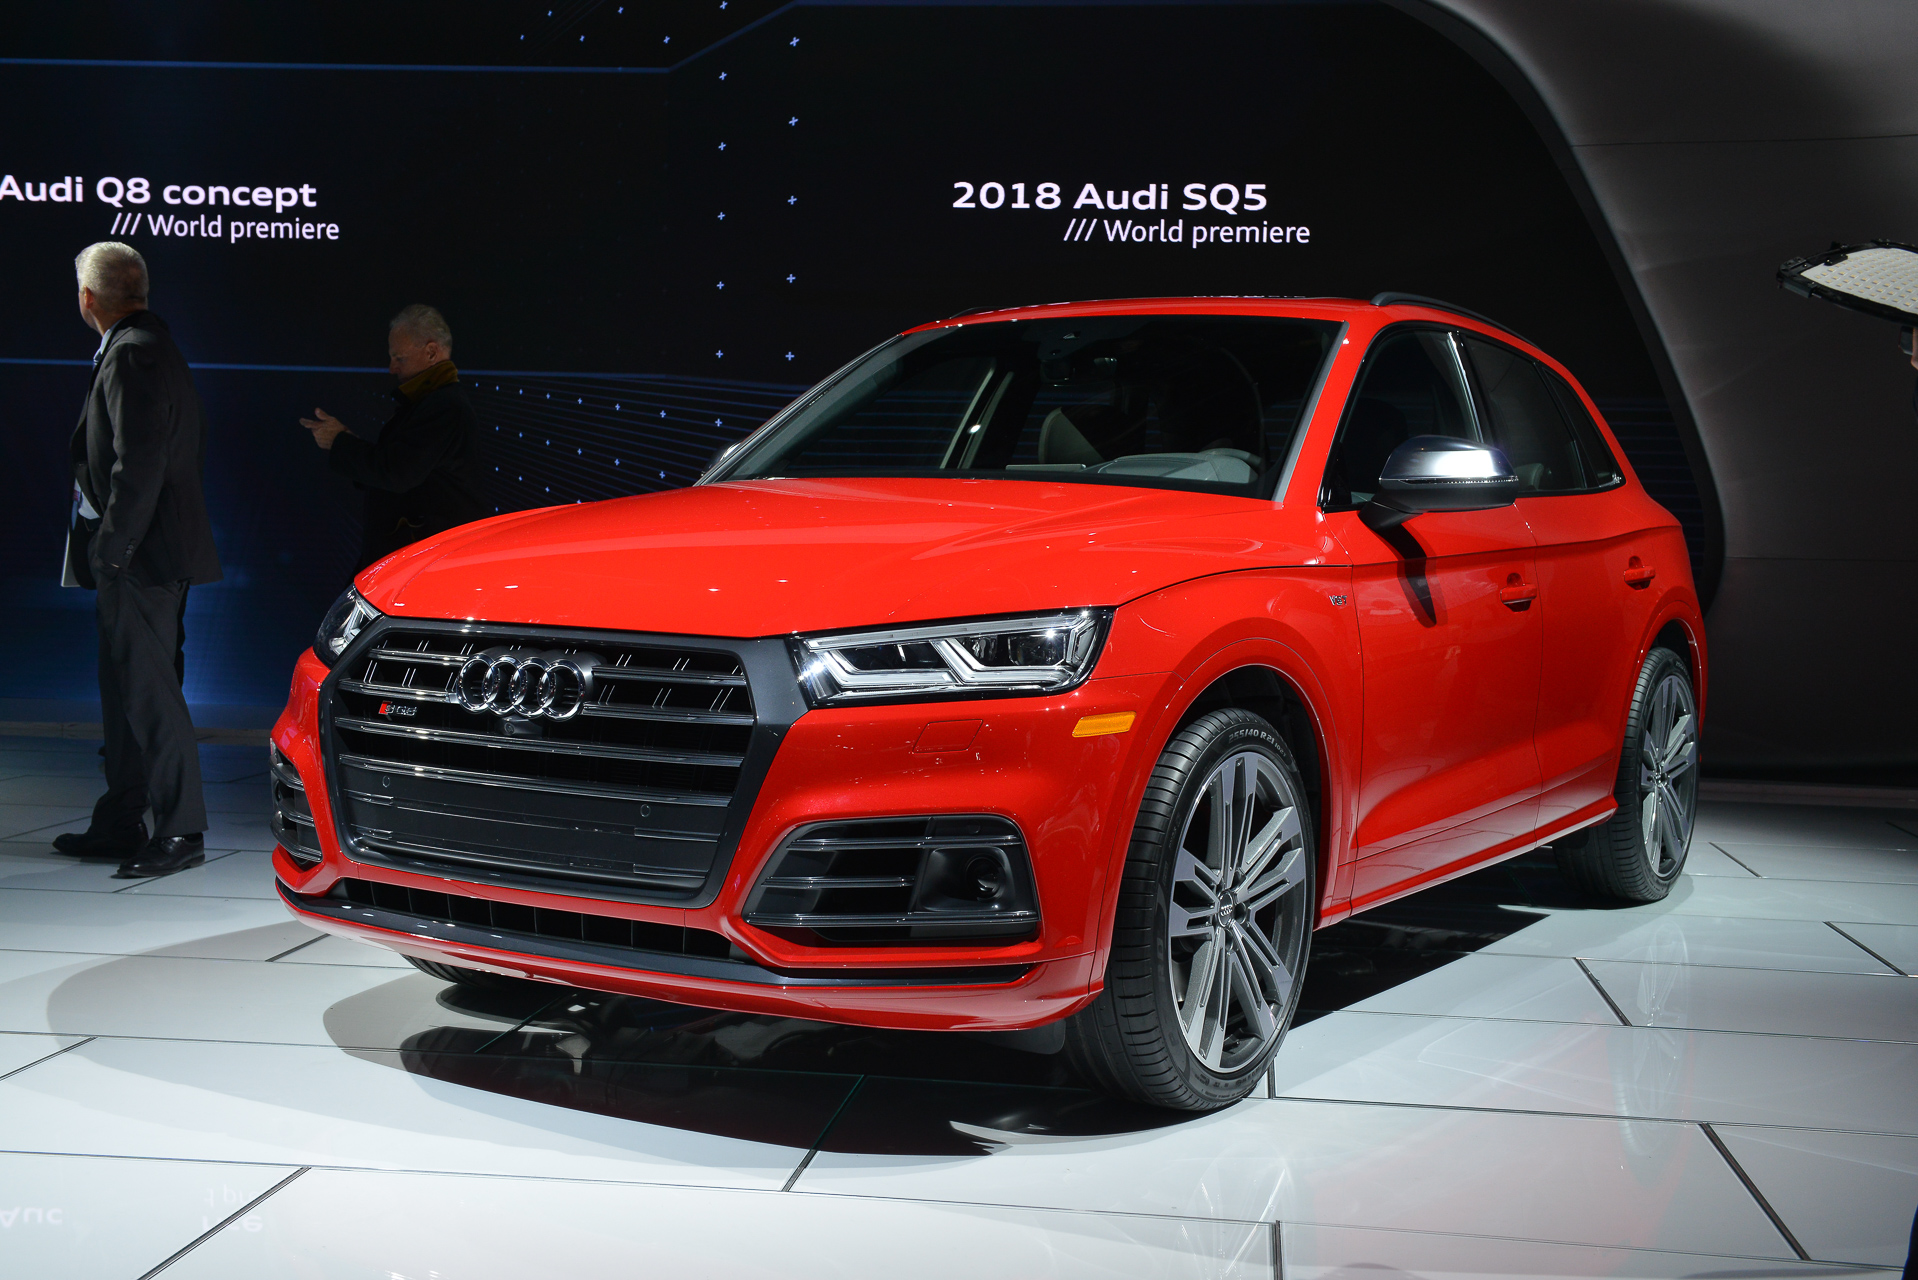 2018 Q5 For Sale 2018 Audi Sq5 Debuts With 354 Hp And 369 Lb-ft